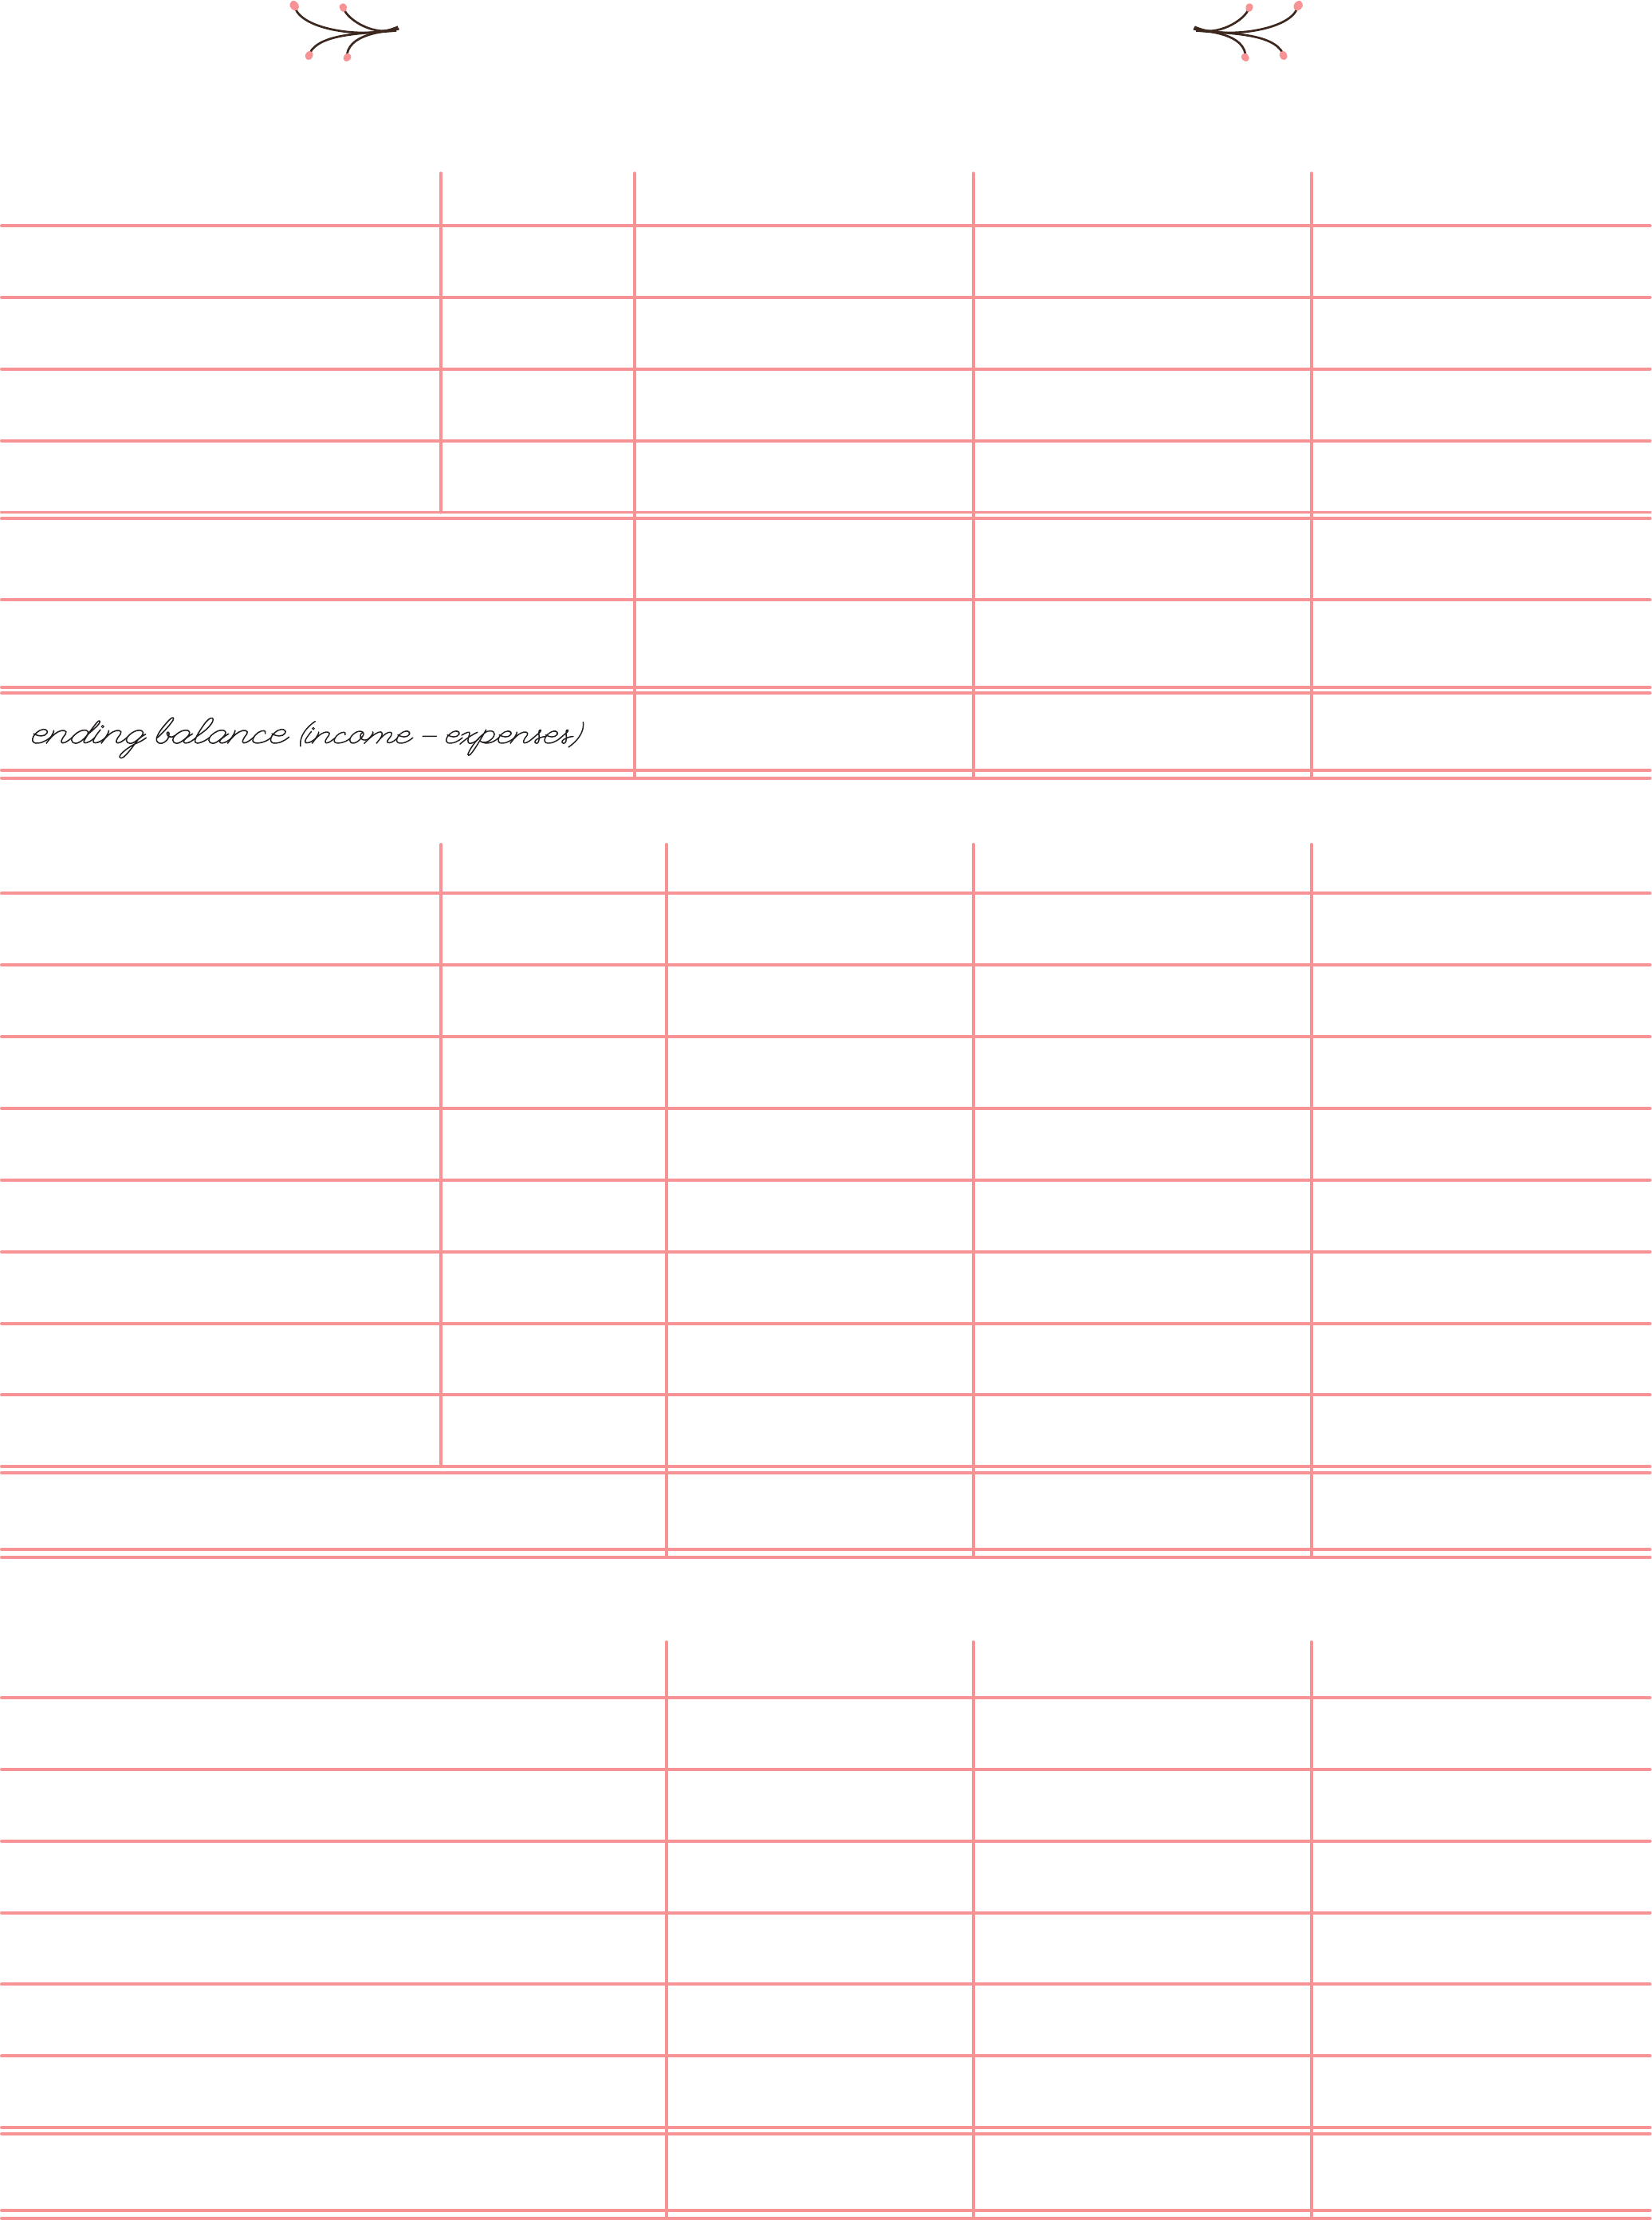 Blank BiWeekly Budget Worksheet Free Download